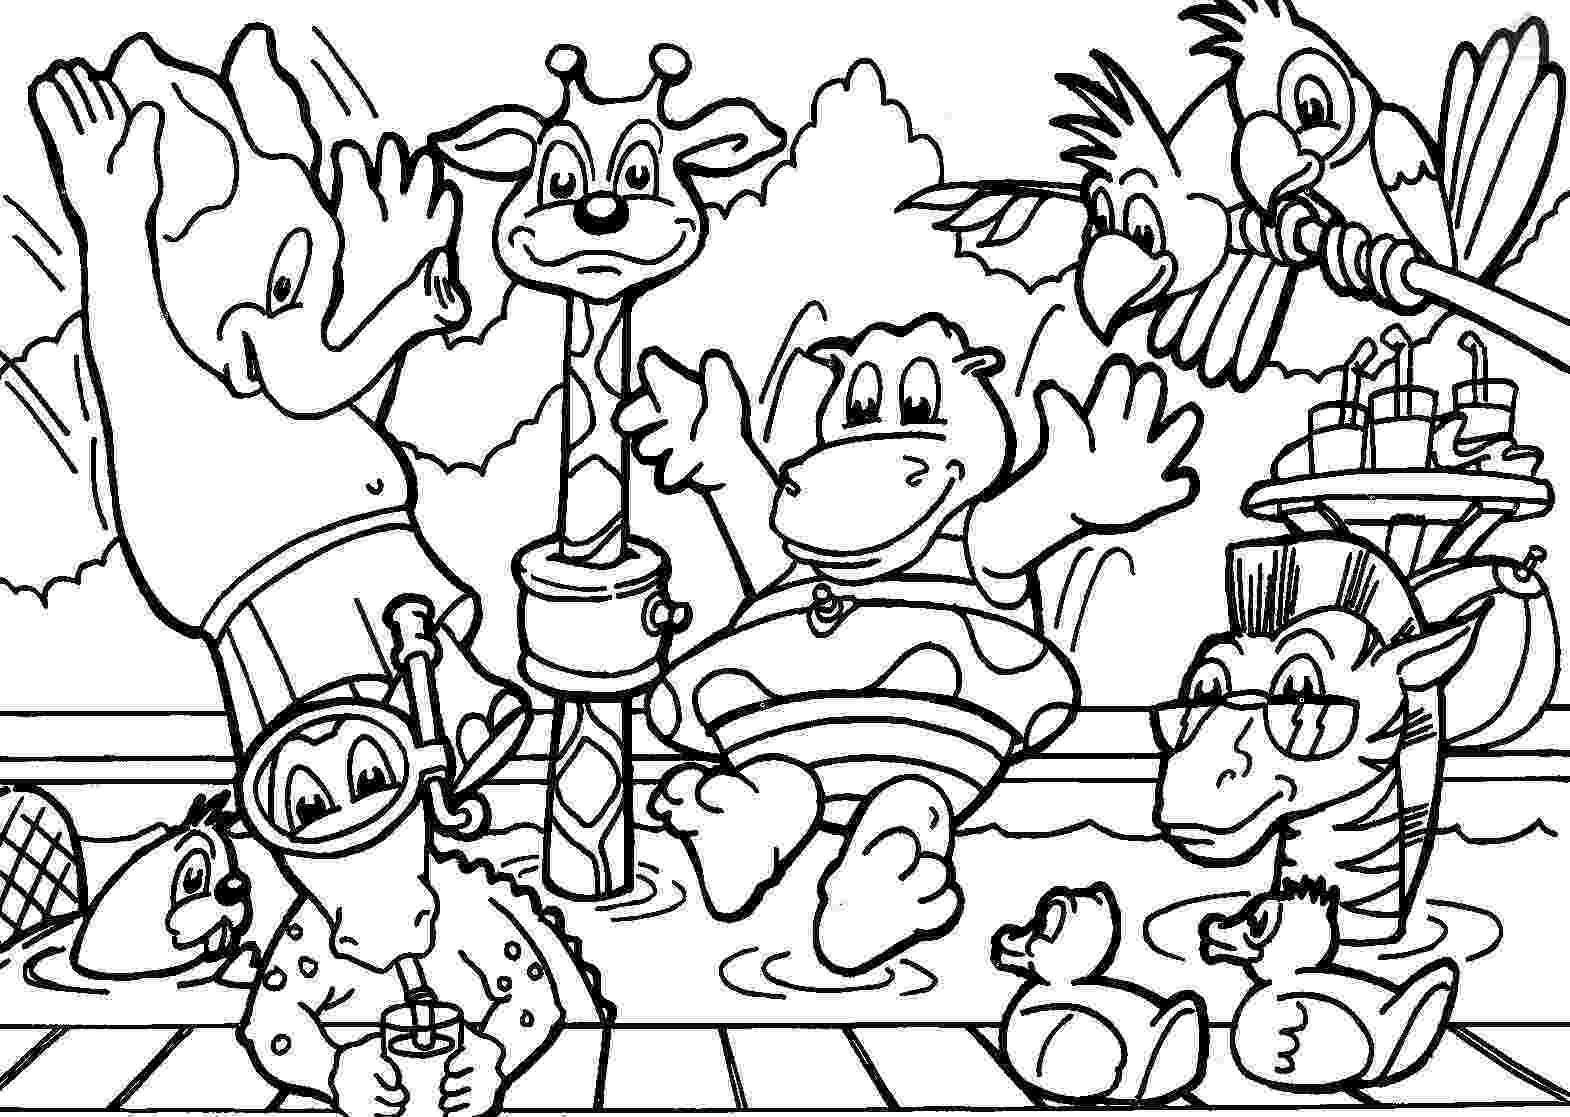 animal coloring pages for kids animal coloring pages 17 coloring kids pages coloring for animal kids